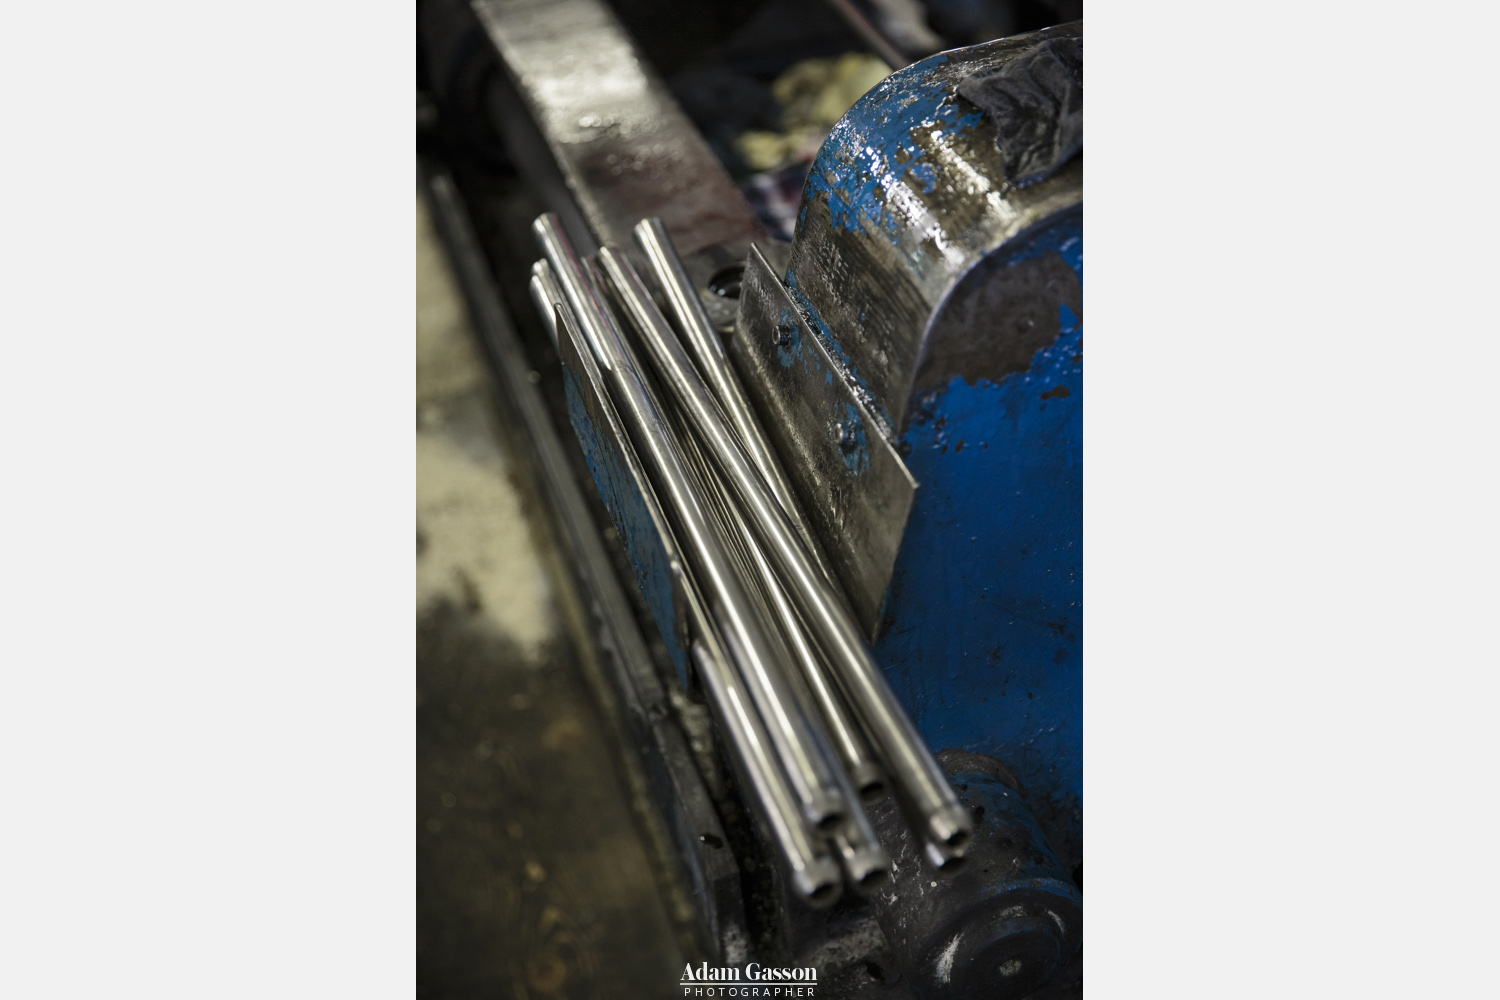 World Steel Association Reynolds Tubing photos